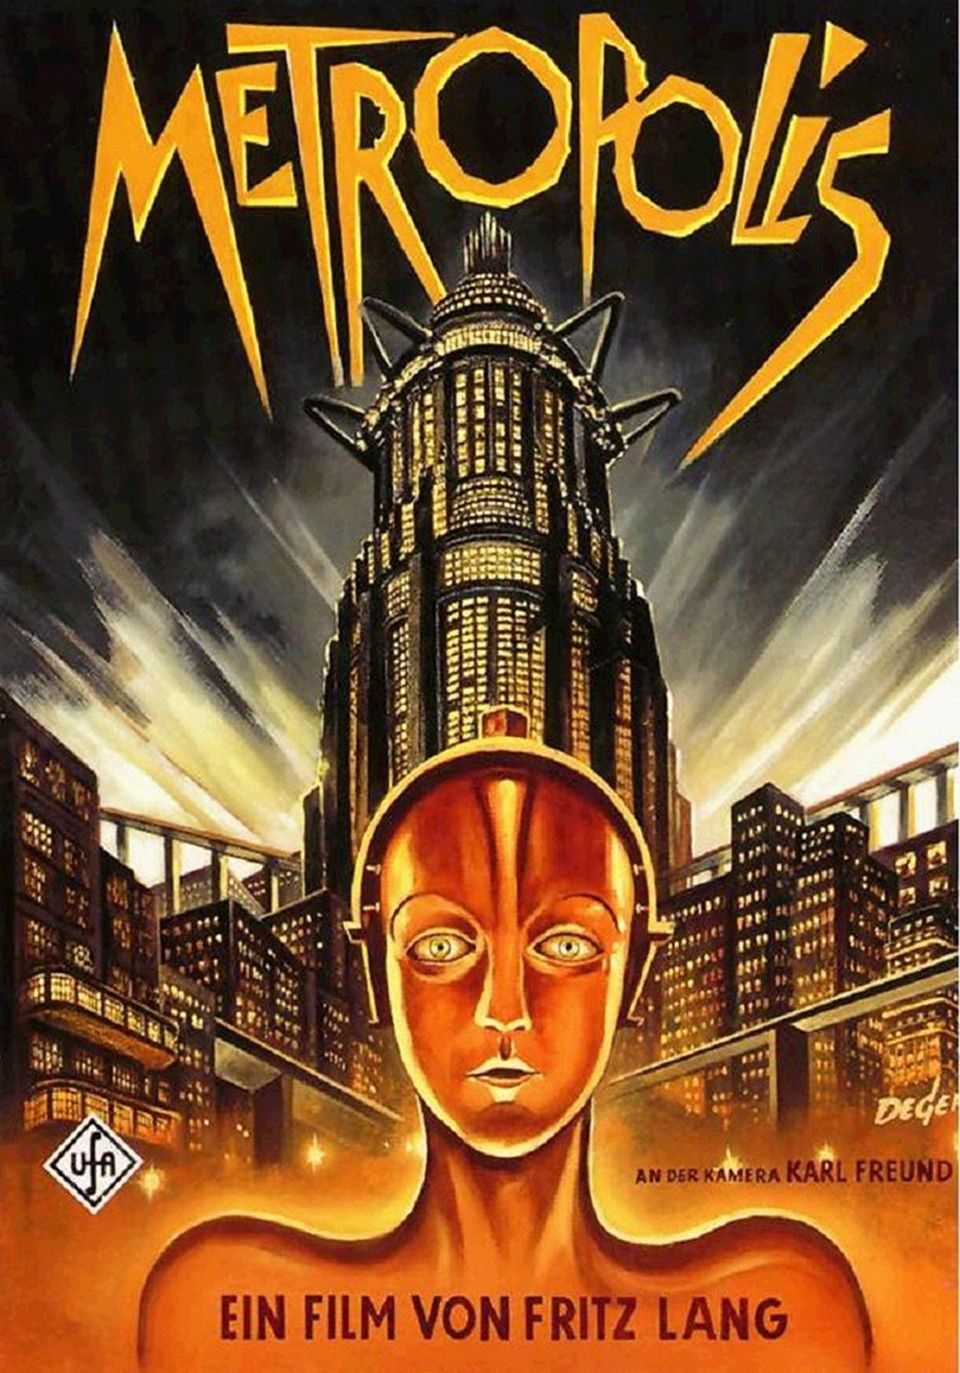 For a 1927 film, Metropolis had some rather remarkable movie posters ...